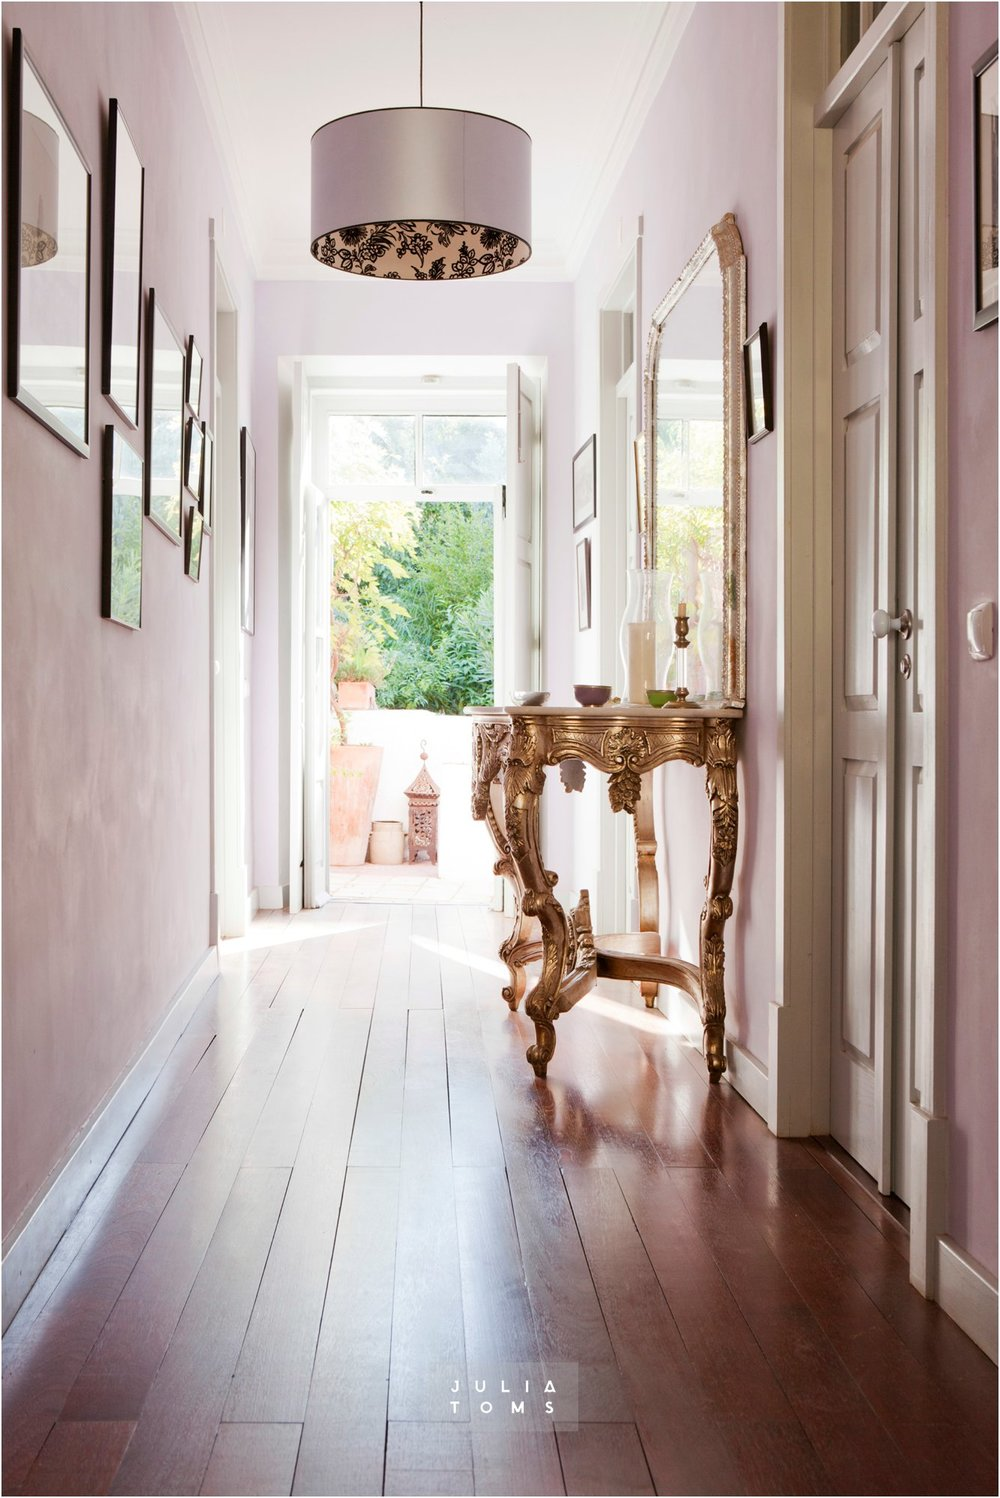 julia_toms_photography_interiors_magazine_017.jpg